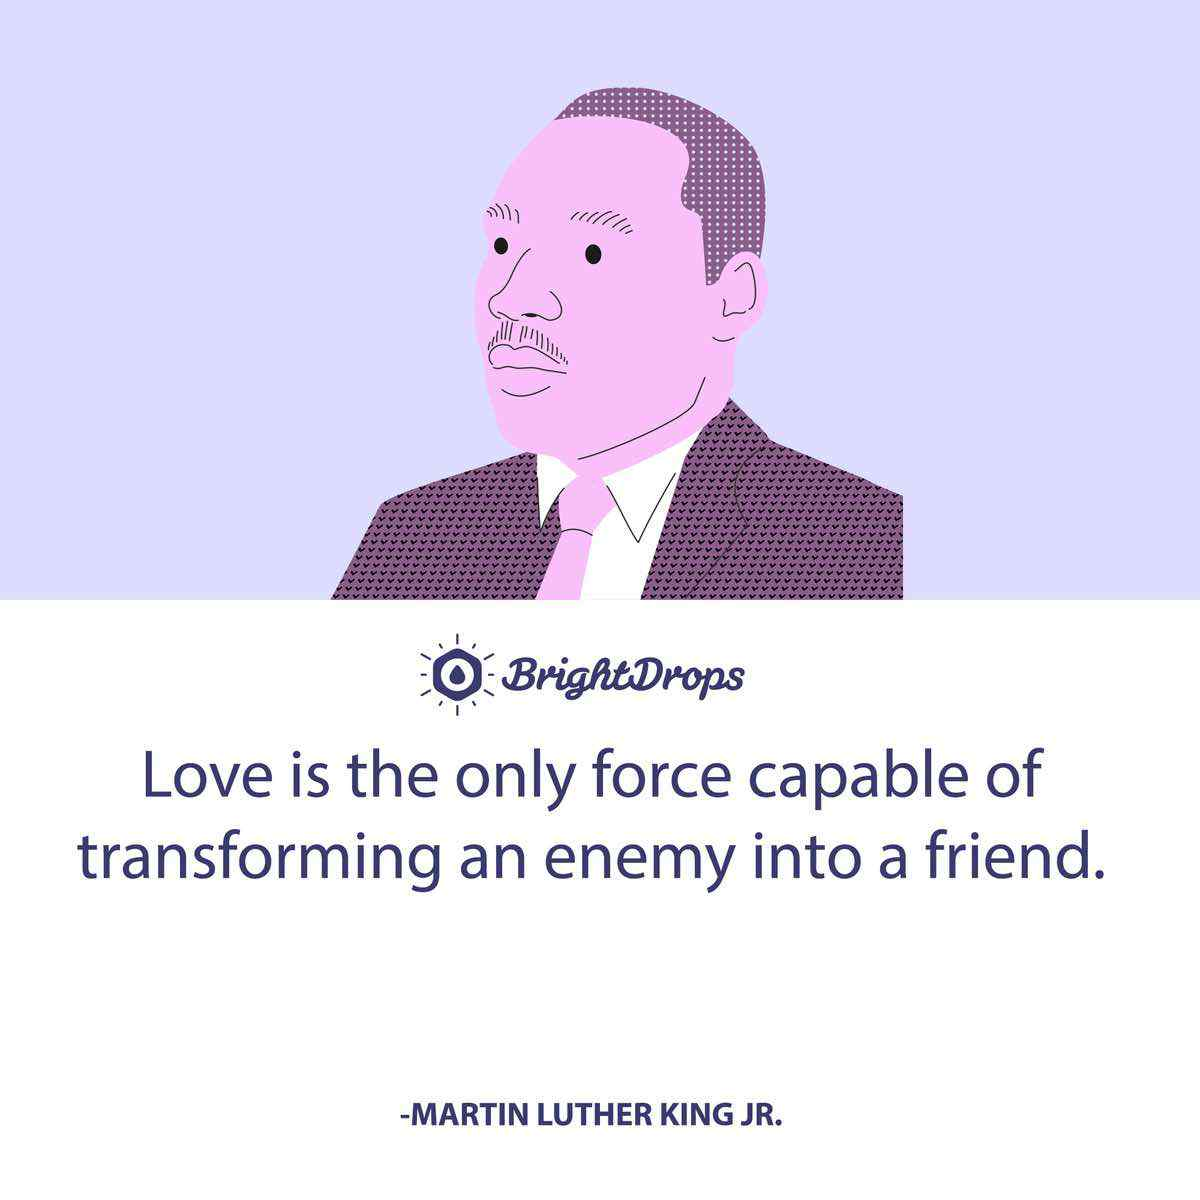 Love is the only force capable of transforming an enemy into a friend. -Martin Luther King Jr.